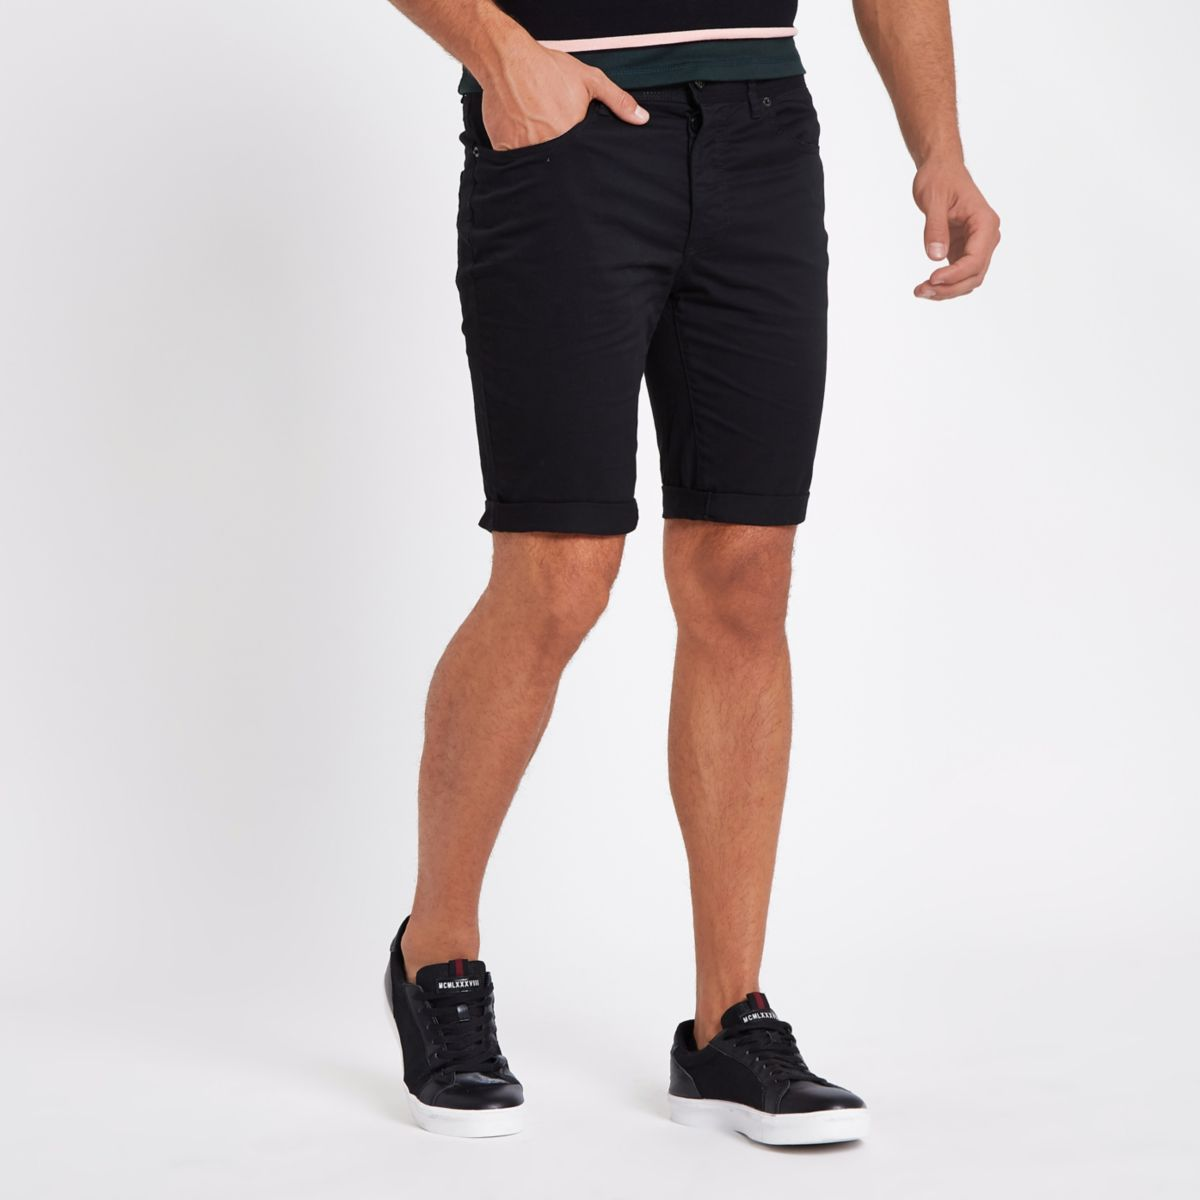 Black skinny fit chino shorts